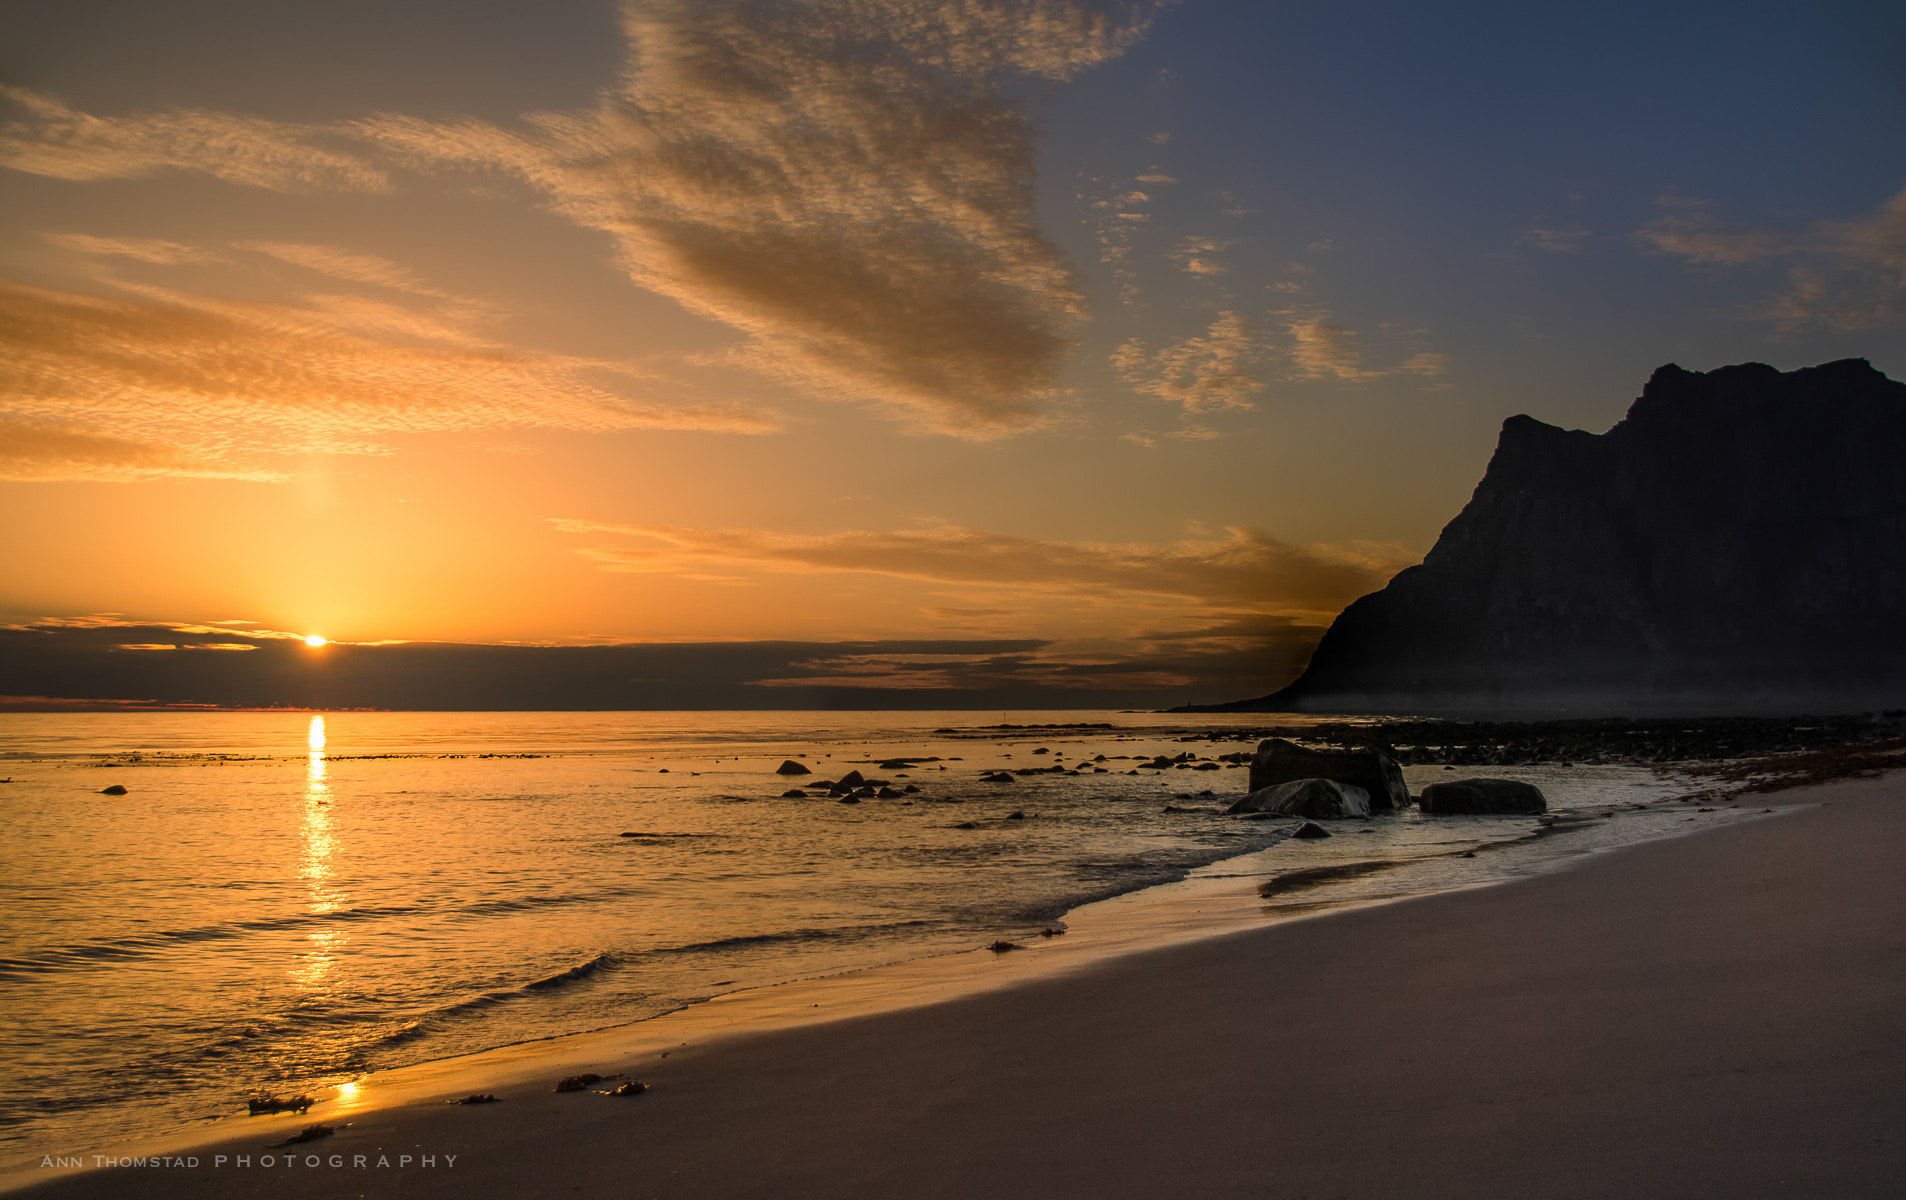 Photograph Midnight Sun by Ann Thomstad on 500px